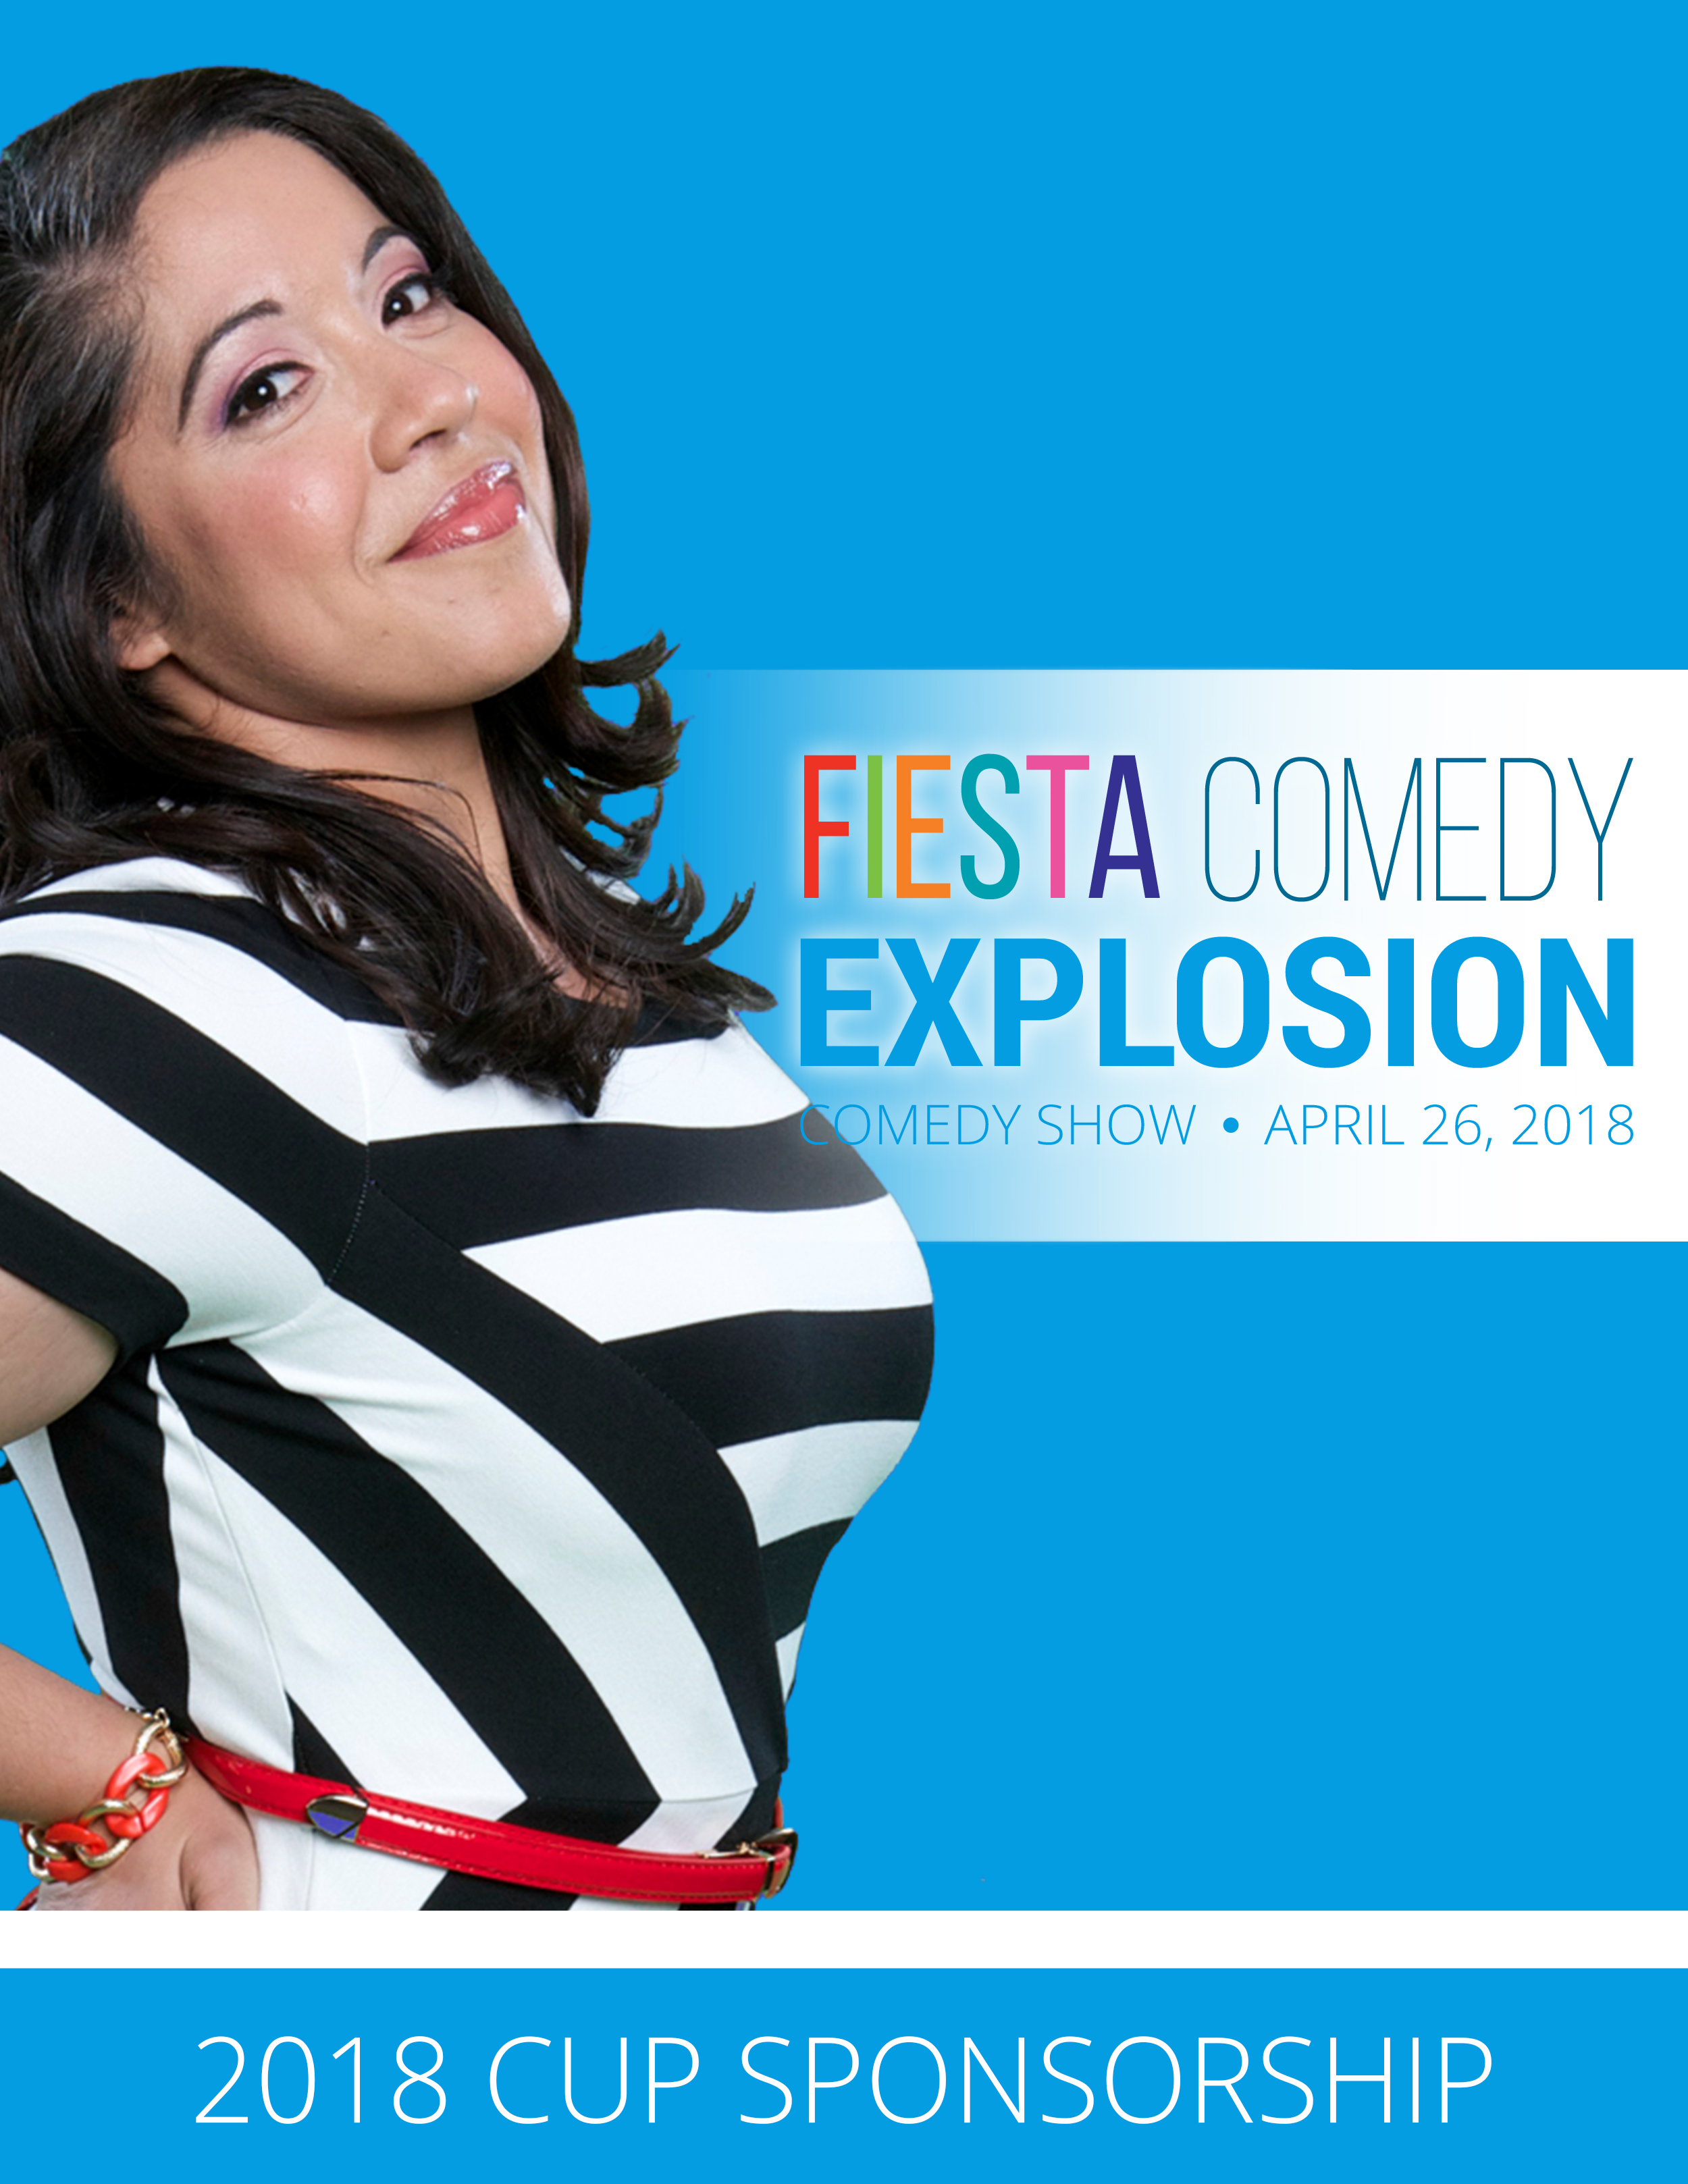 Cup Sponsorship   Fiesta Comedy Explosion 2018 Sponsorship Package   Fiesta San Antonio   Official Priest Holmes Foundation Website   Priest Holmes Son   Priest Holmes Girlfriend   Priest Holmes Wife   Priest Holmes Engaged   Priest Holmes Family   Priest Holmes is Engaged